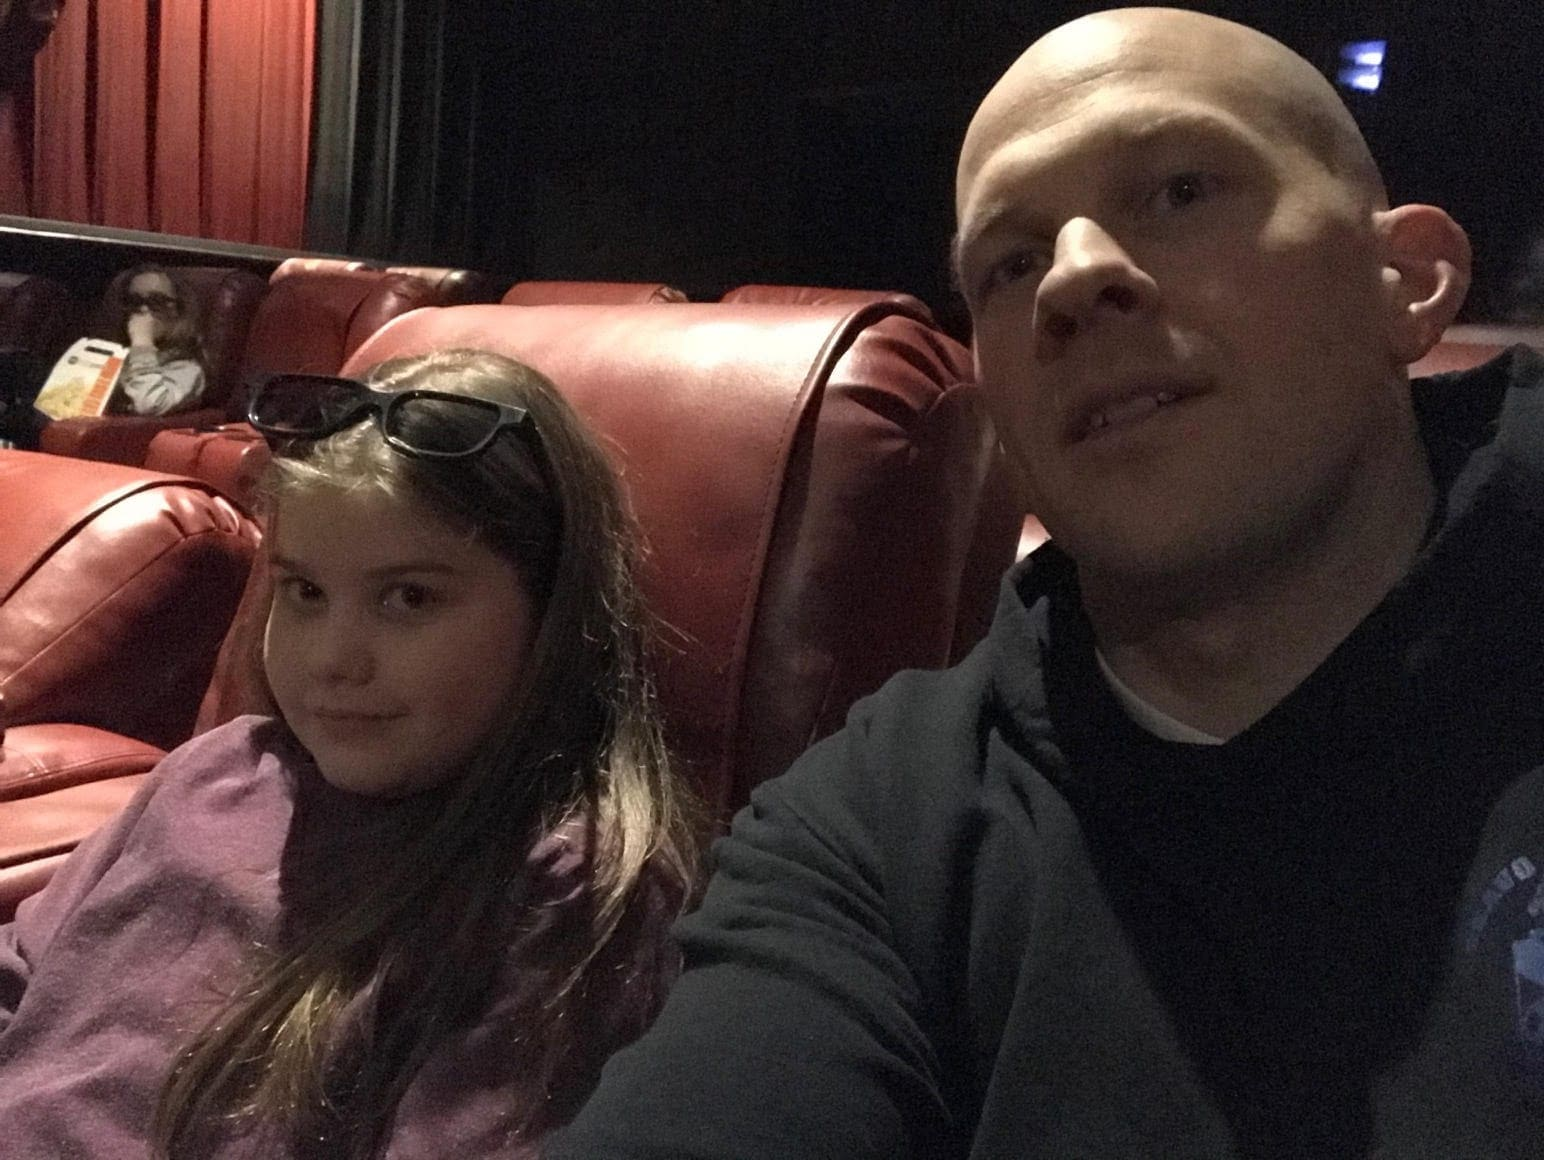 Brooke and Gordon at the movie theater